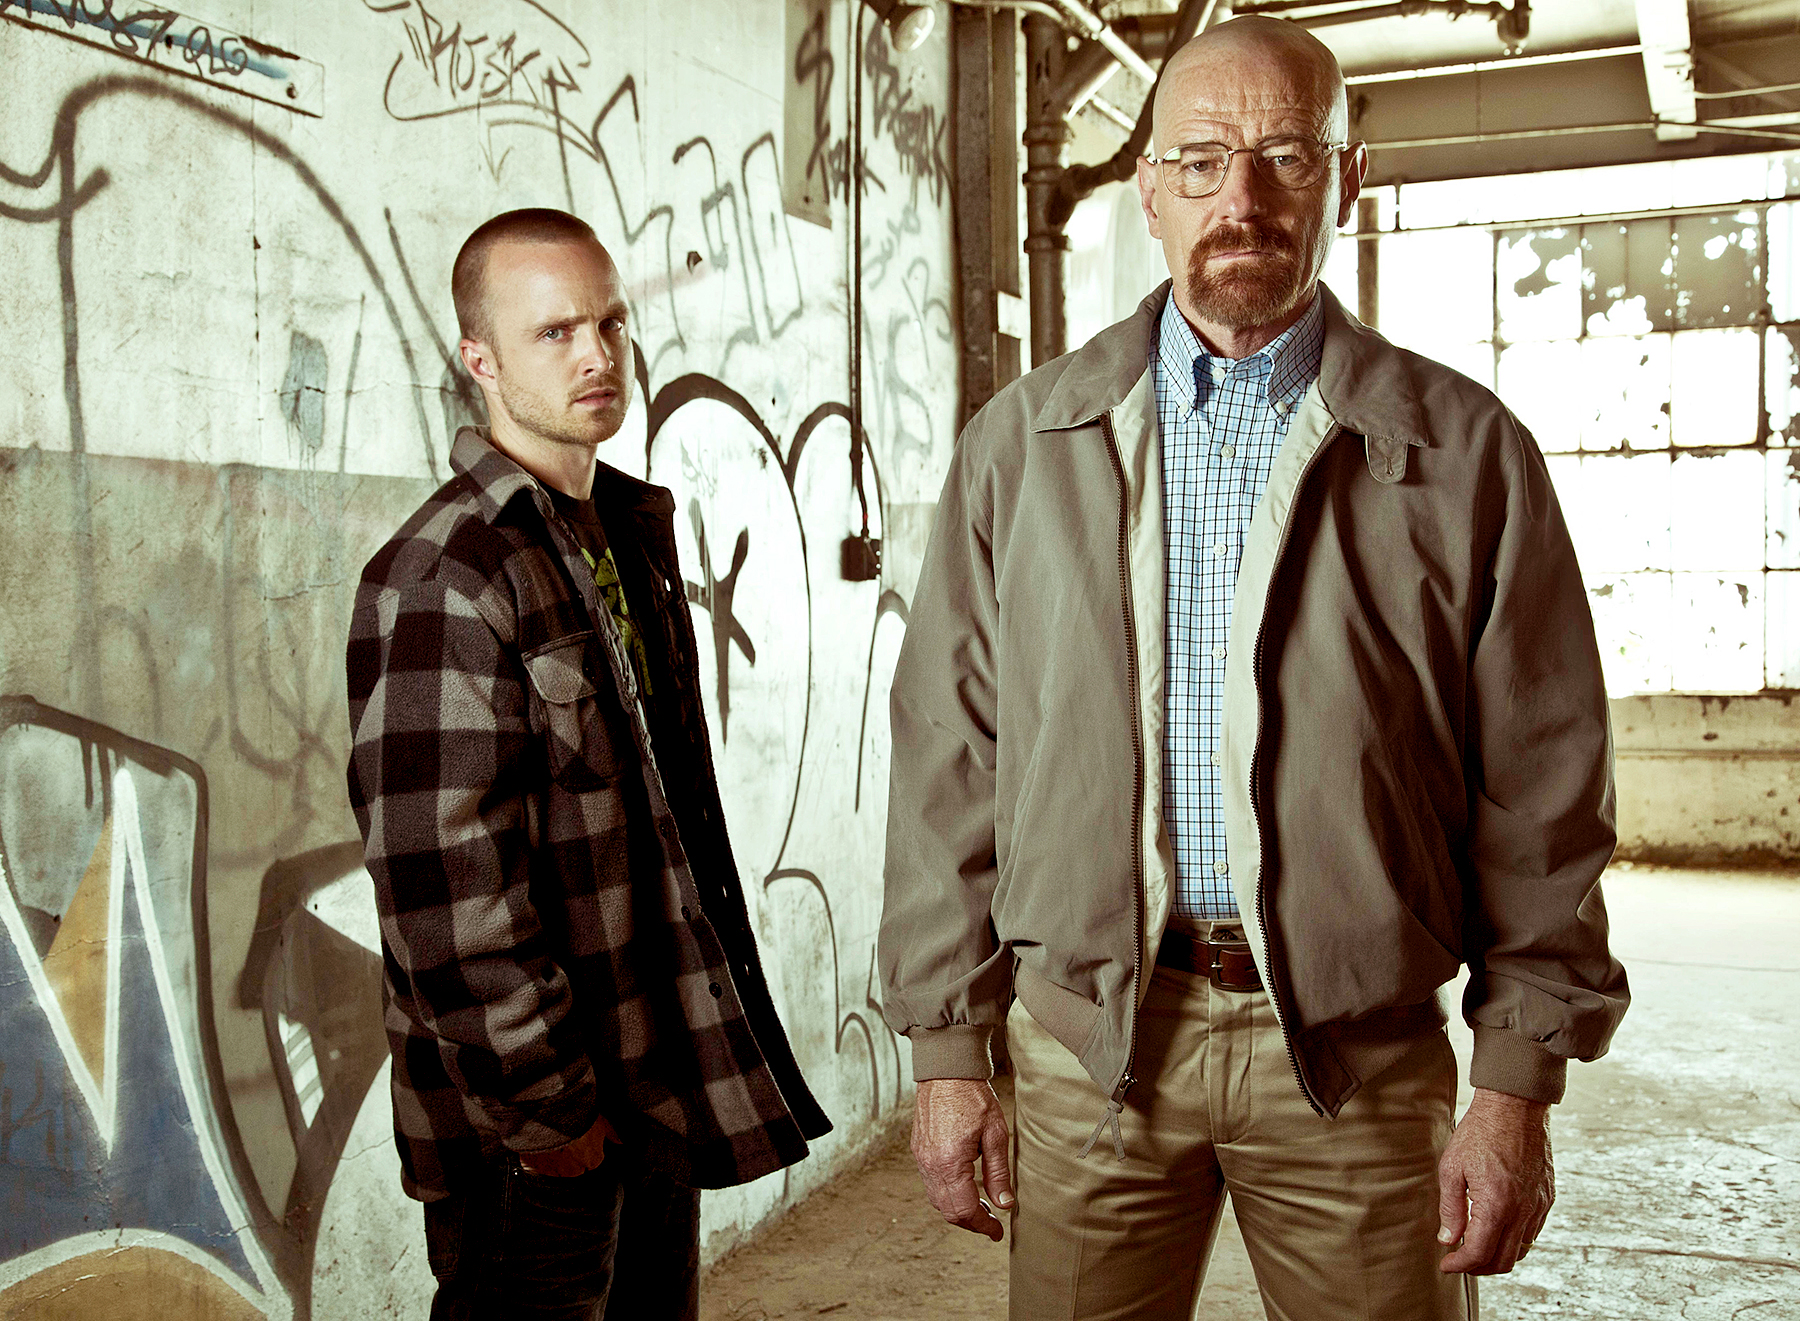 Breaking Bad Cast Reuniting For San Diego Comic-Con Panel